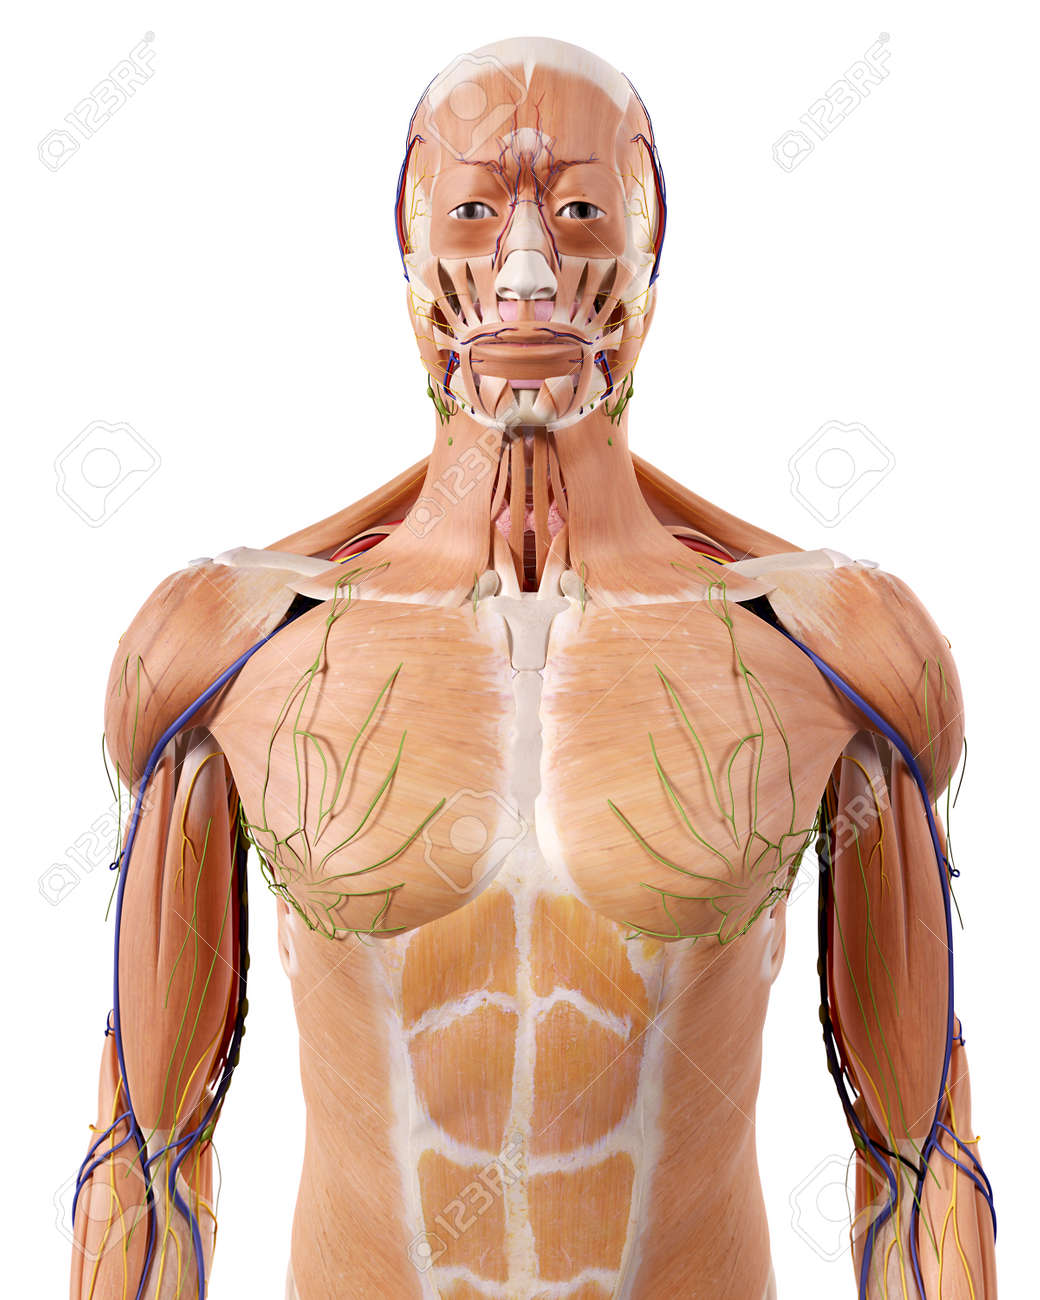 Medically Accurate Illustration Of The Upper Body Anatomy Stock